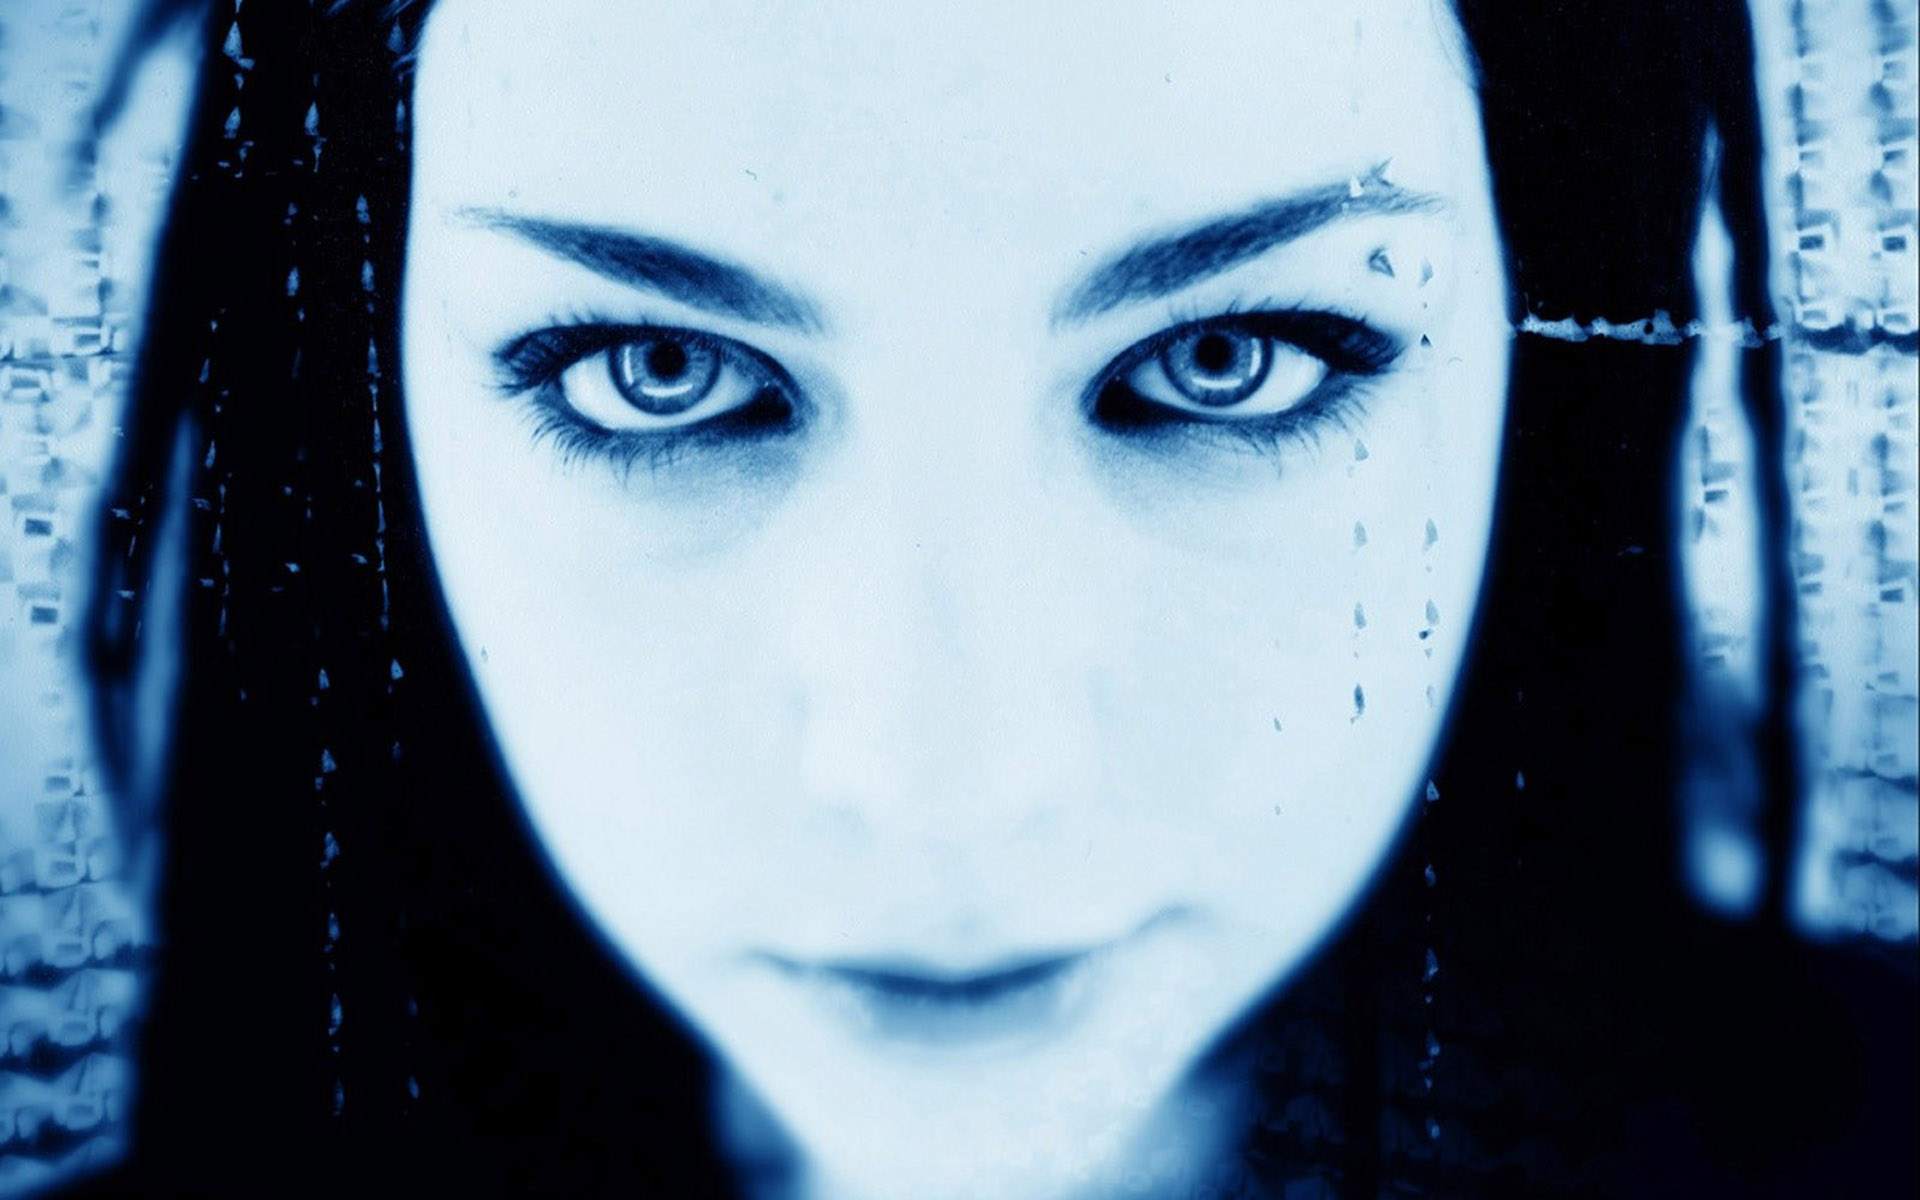 Evanescence Fallen 1920x1200 Wallpapers 1920x1200 Wallpapers 1920x1200